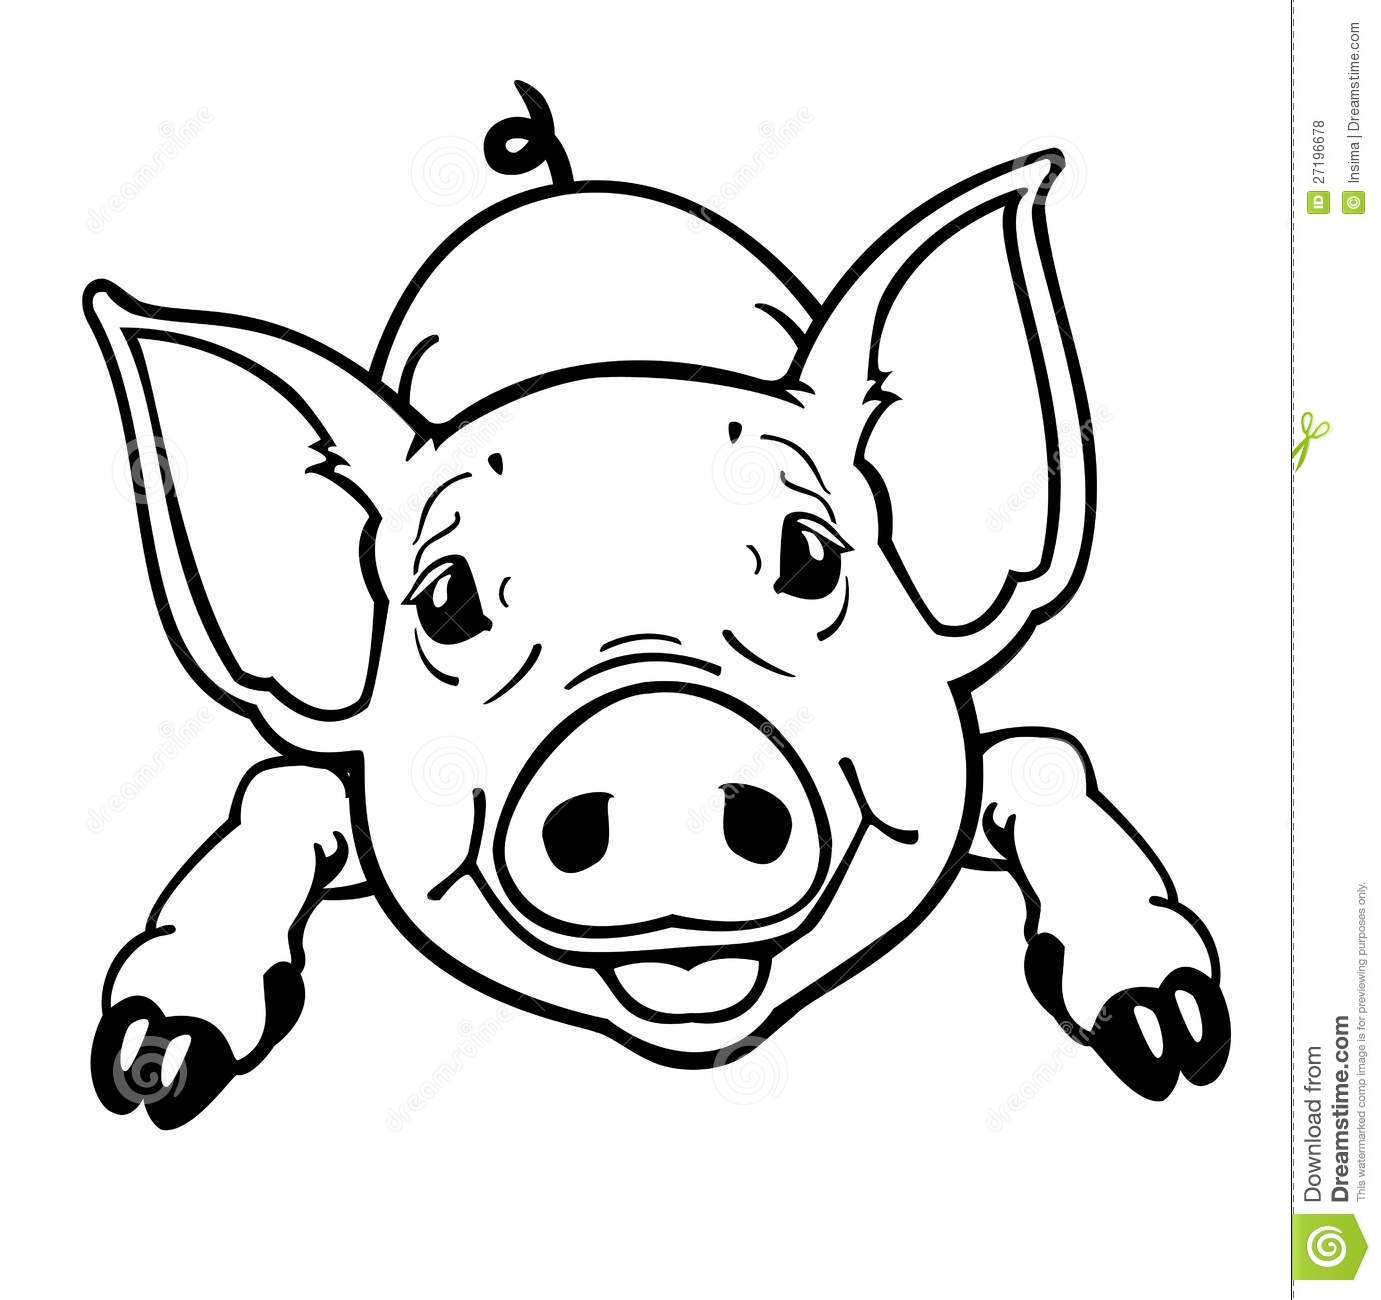 Piglet Black And White Royalty Free Stock Photos - Image ... Raccoon Face Clip Art